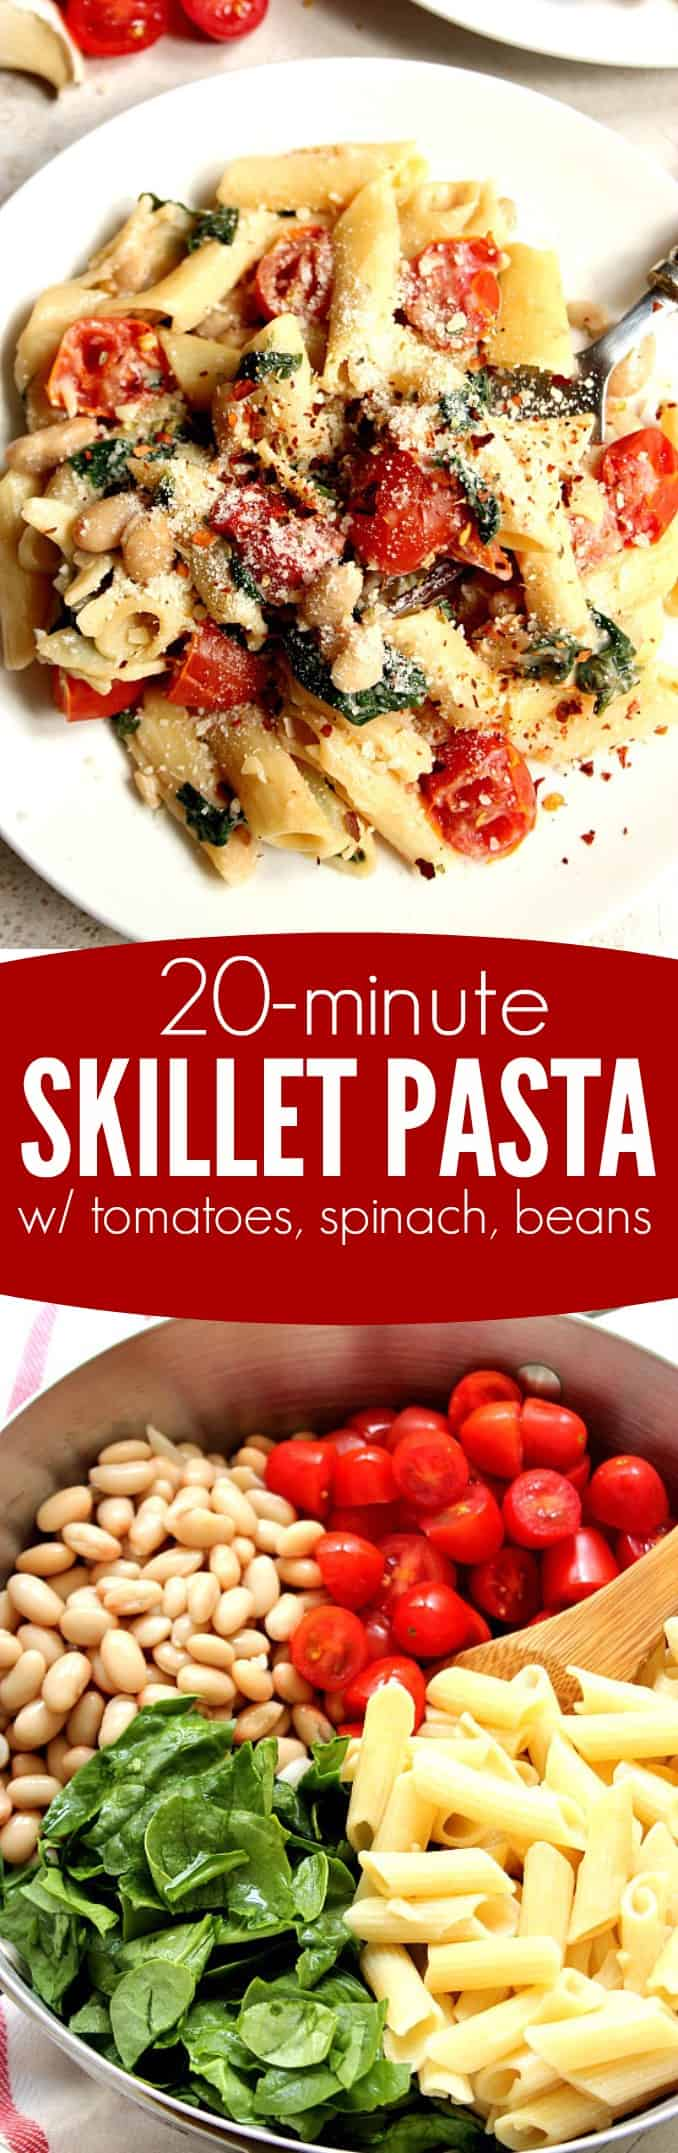 veggie pasta long1 20 Minute Skillet Pasta with Tomatoes, Spinach and Beans Recipe